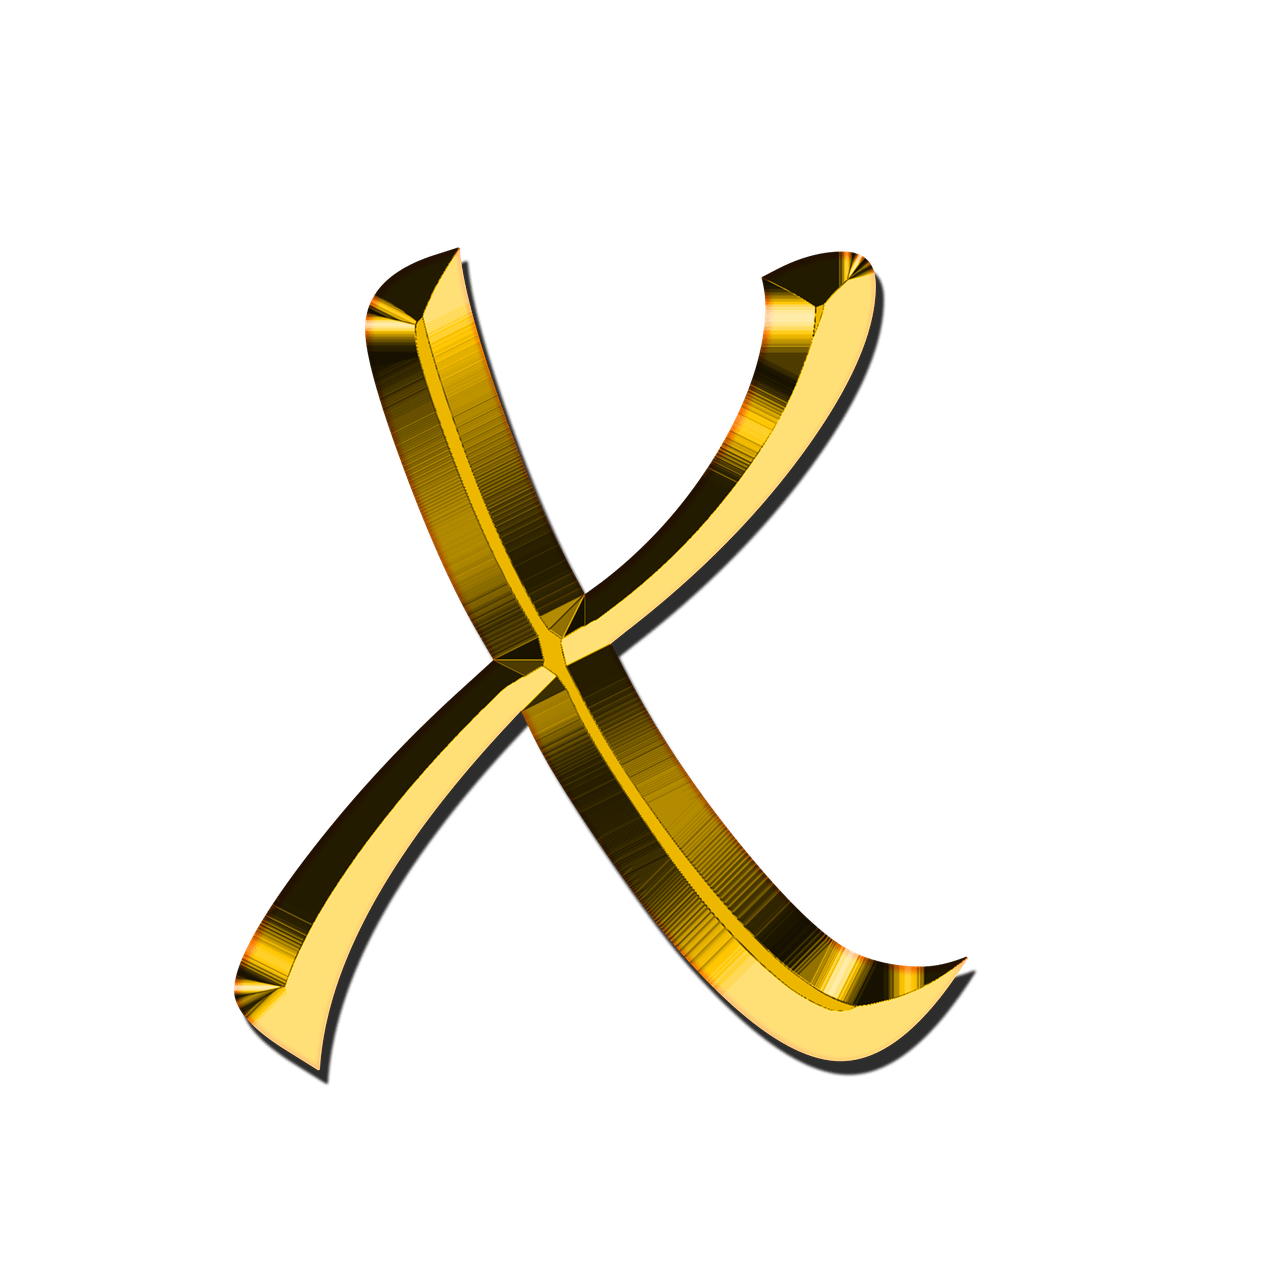 The letter x png